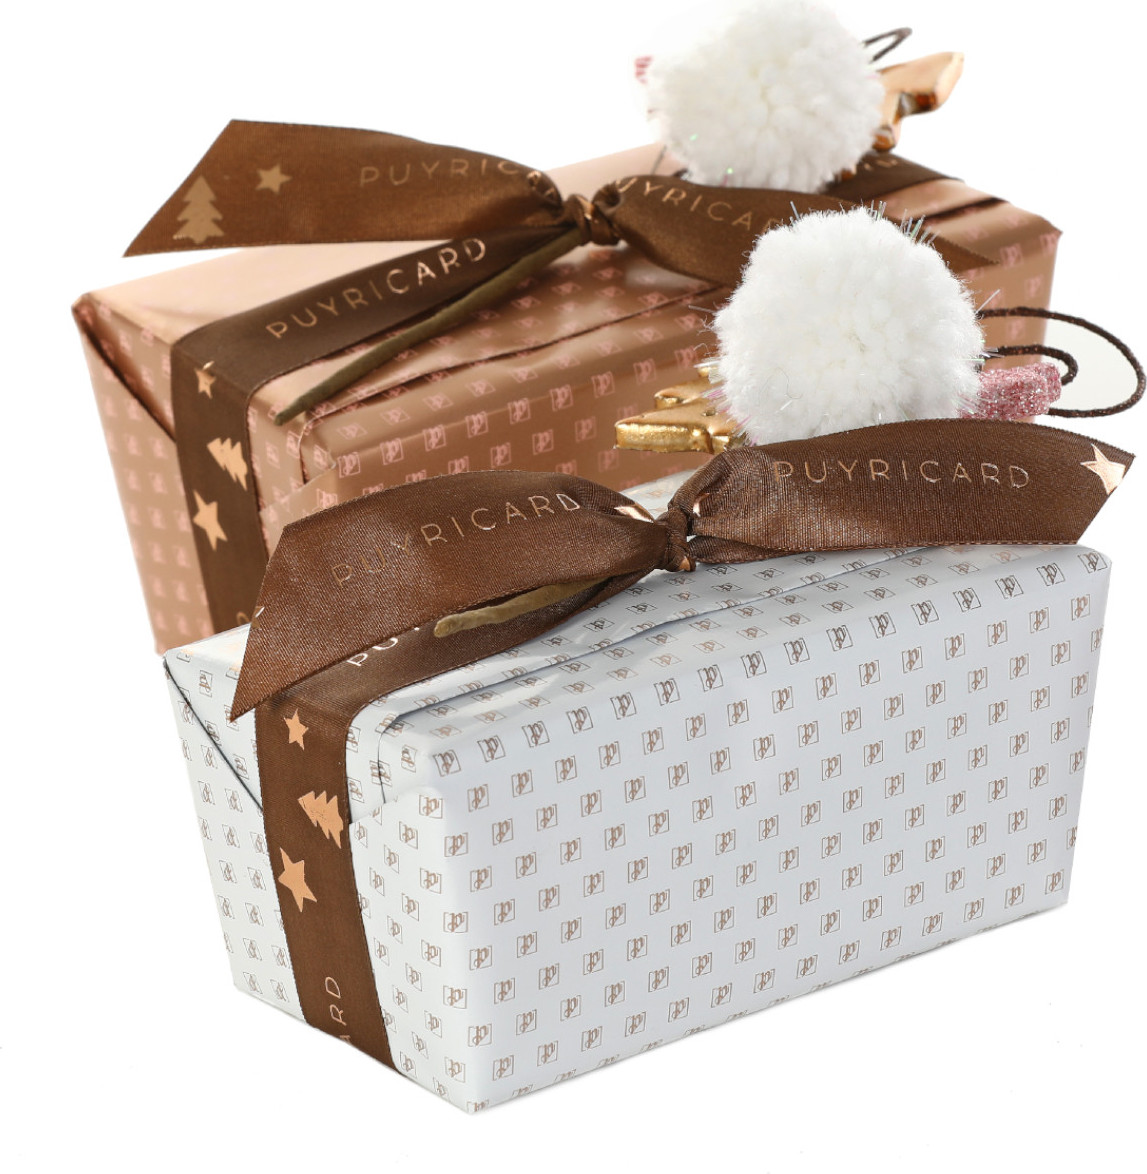 CÉZANNE CHOCOLATE AND CALISSON GIFT BOX